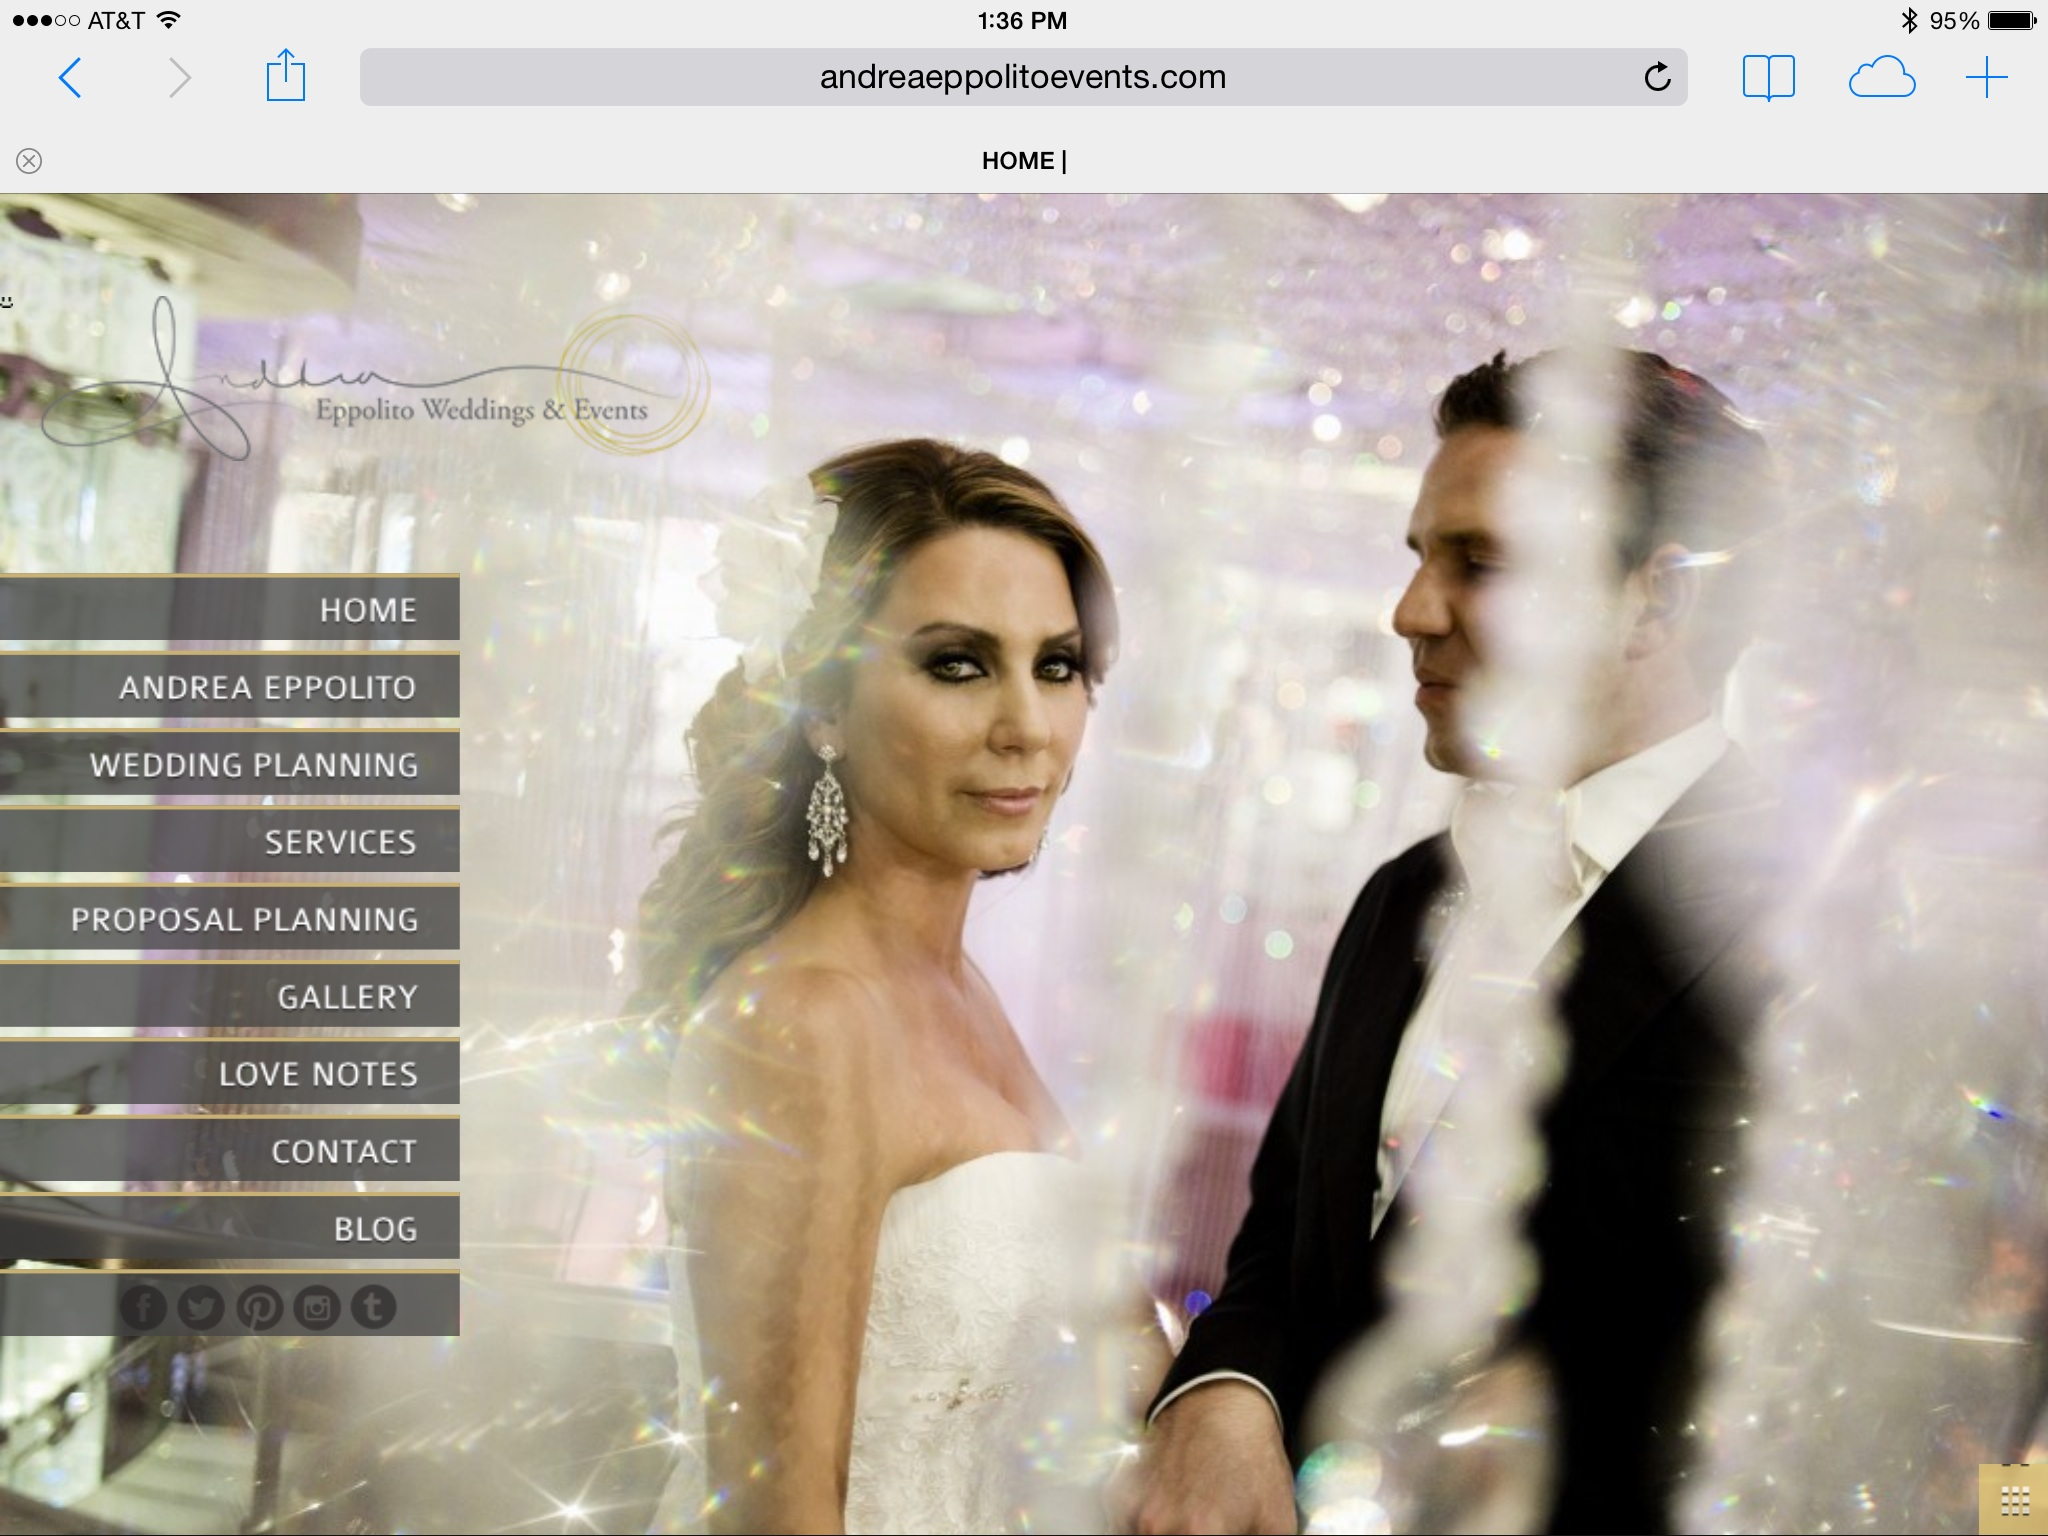 Goodbye, Wordpress and Andrea Eppolito Weddings & Events 2.0!  Welcome to the new 3.0!